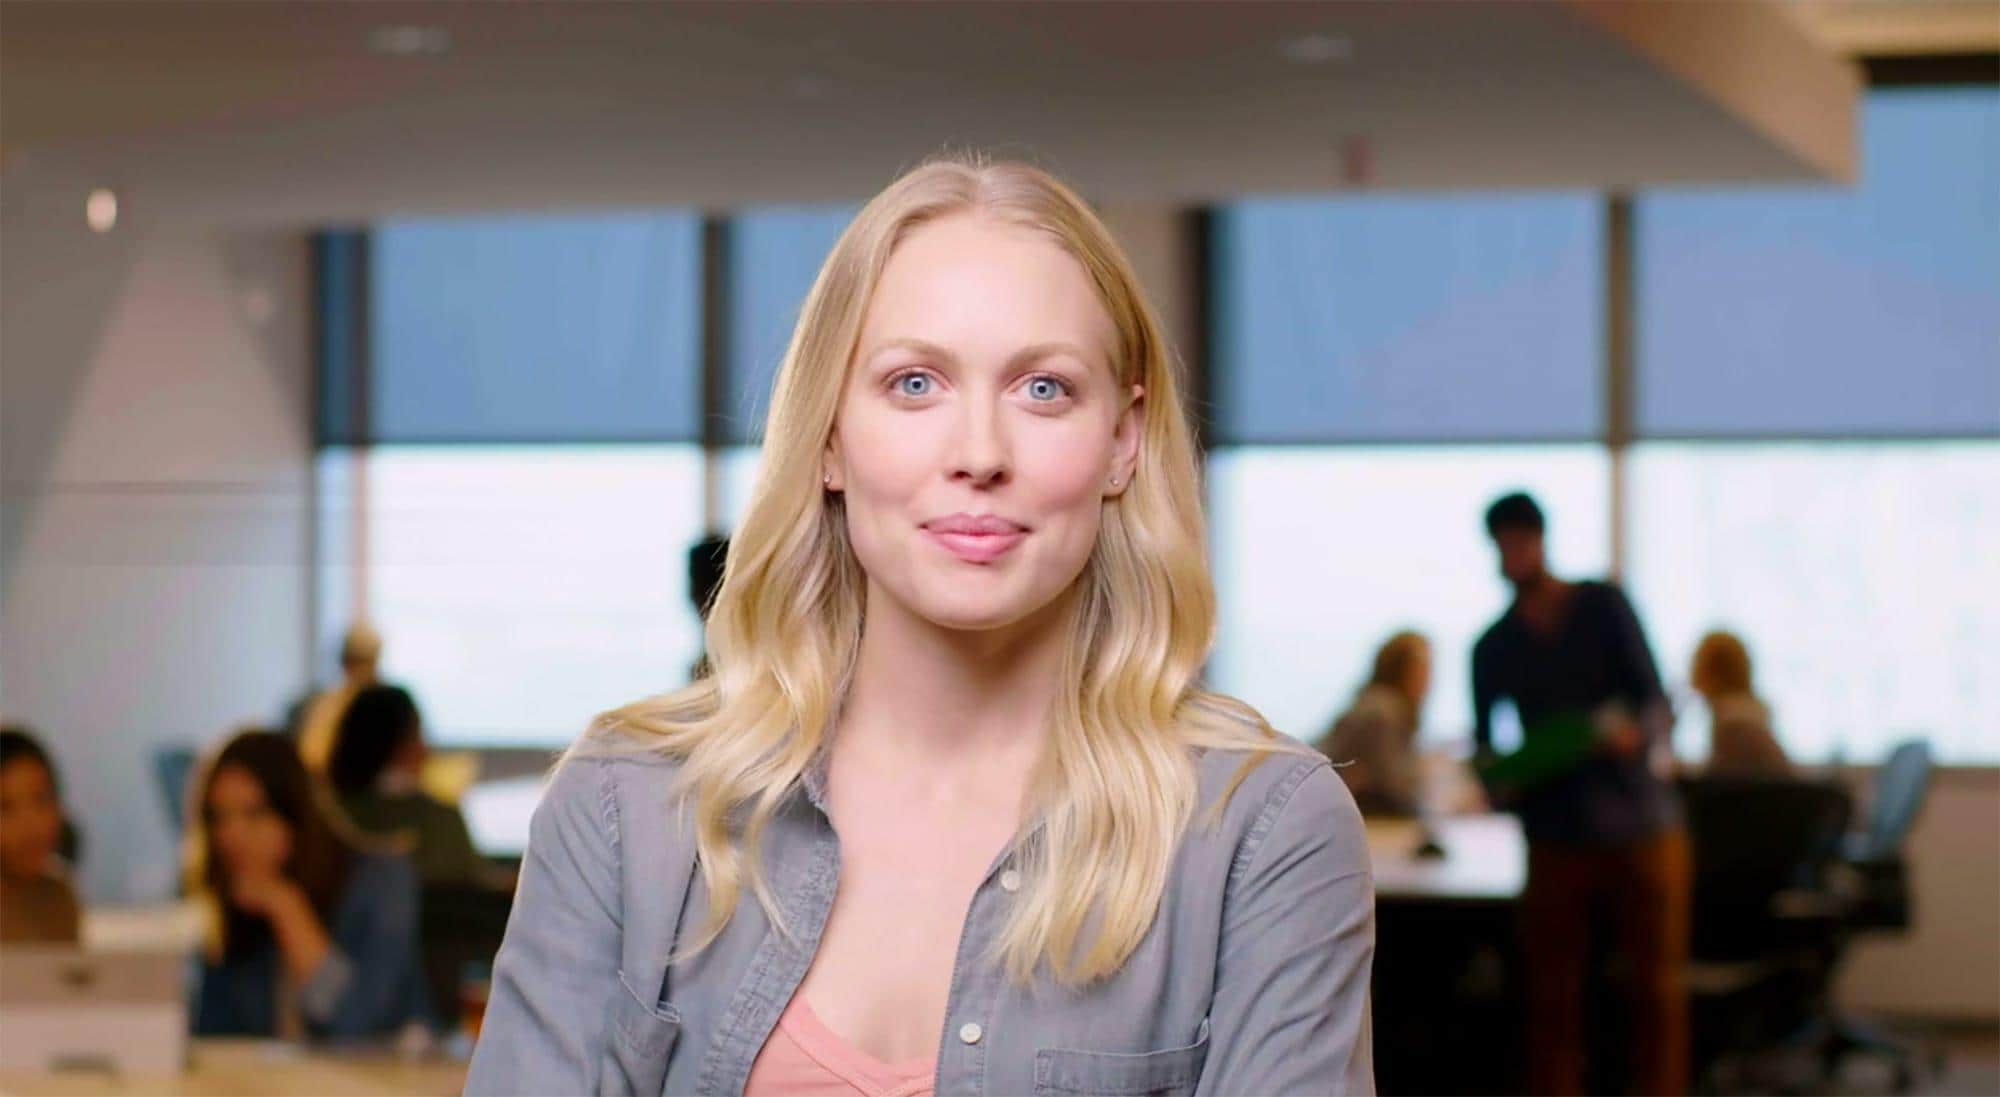 Woman looking at camera in office setting